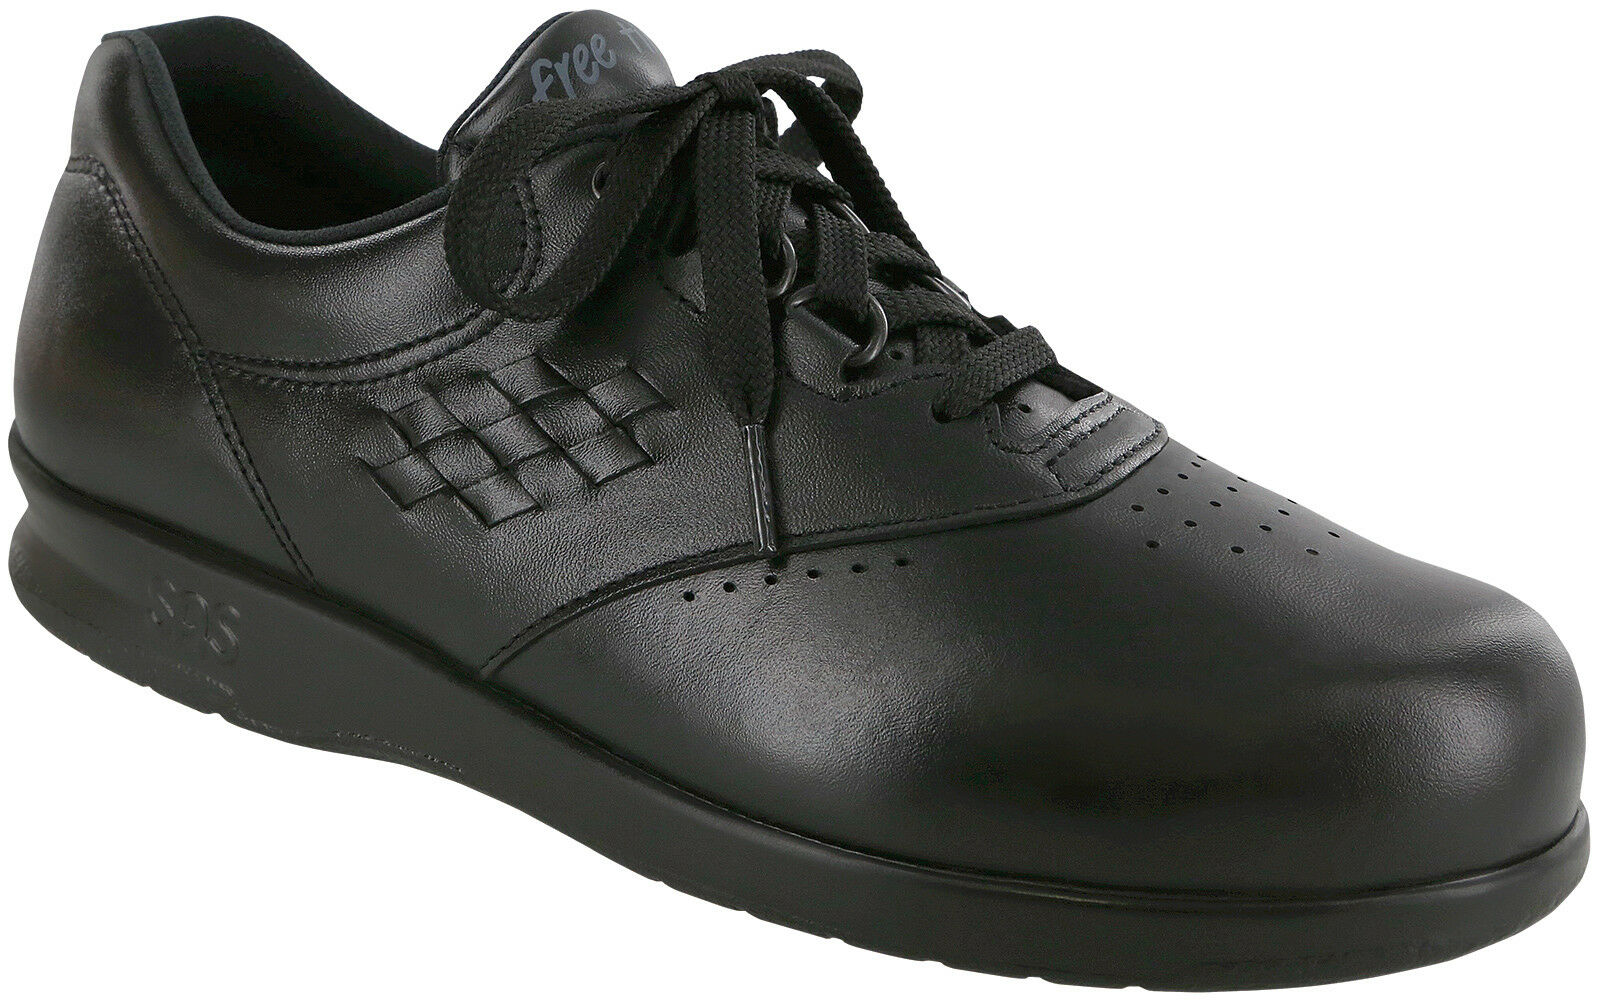 SAS SAS SAS Free Time Black Womens shoes 10 Medium M FREE SHIPPING Brand New In Box Save 51d237